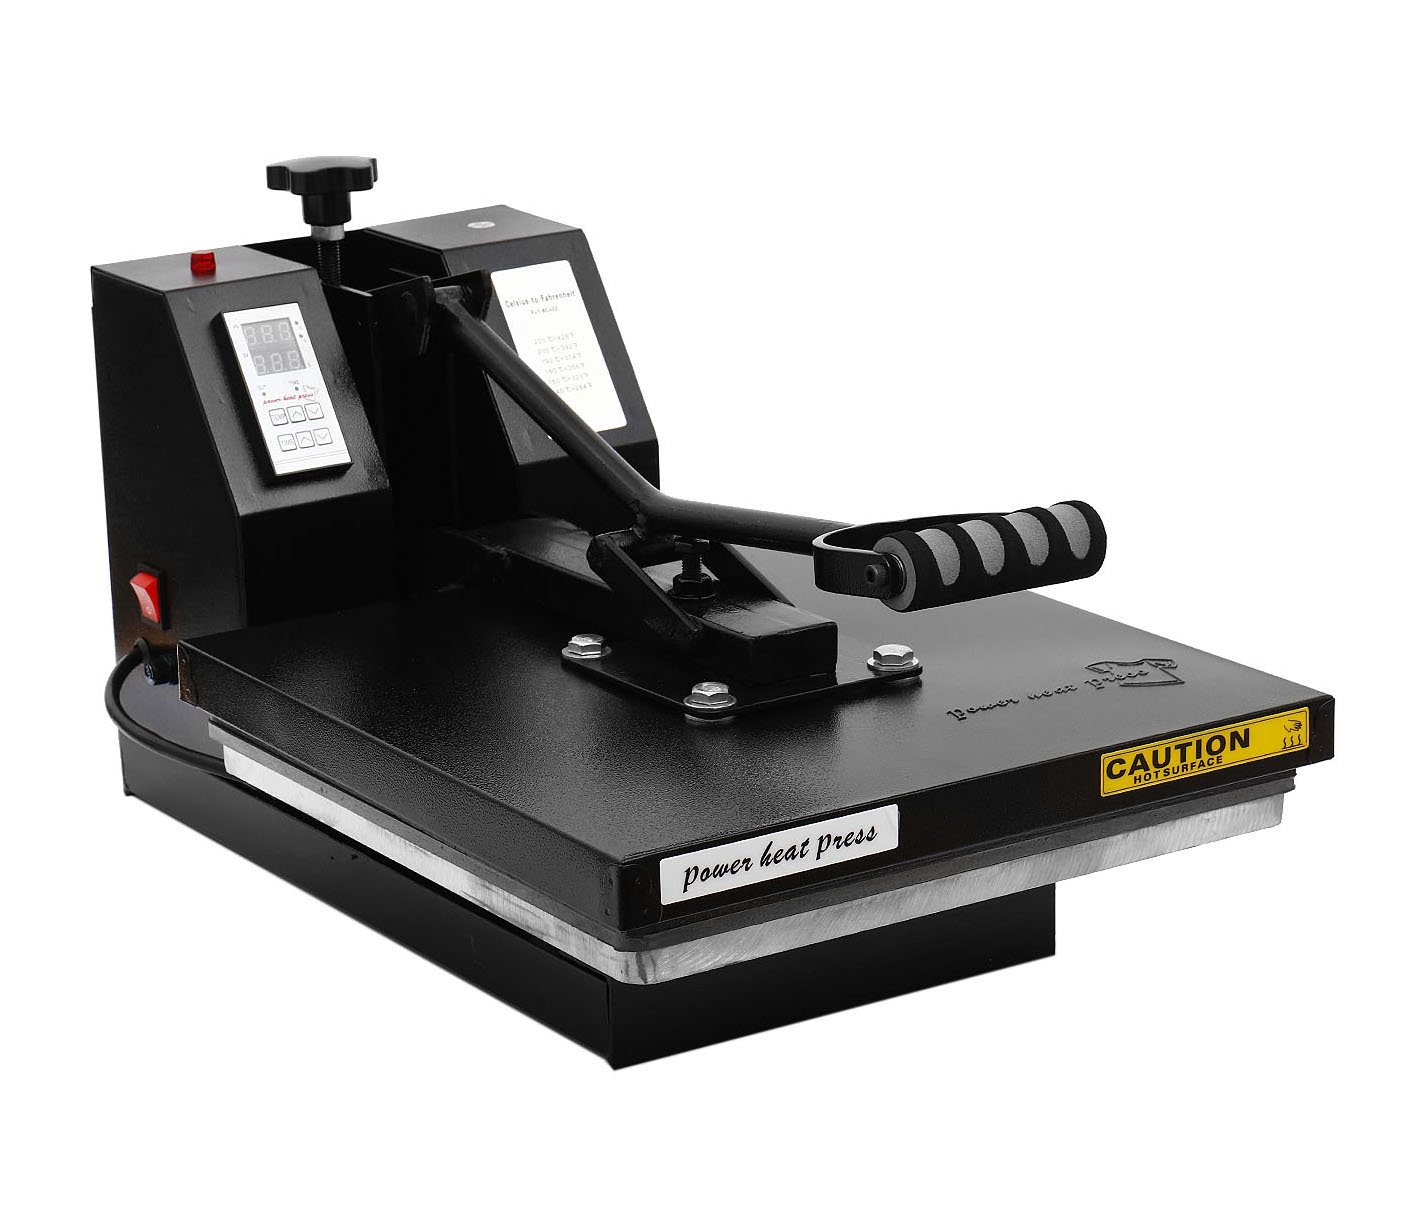 PowerPress Heat Press 15 x 15